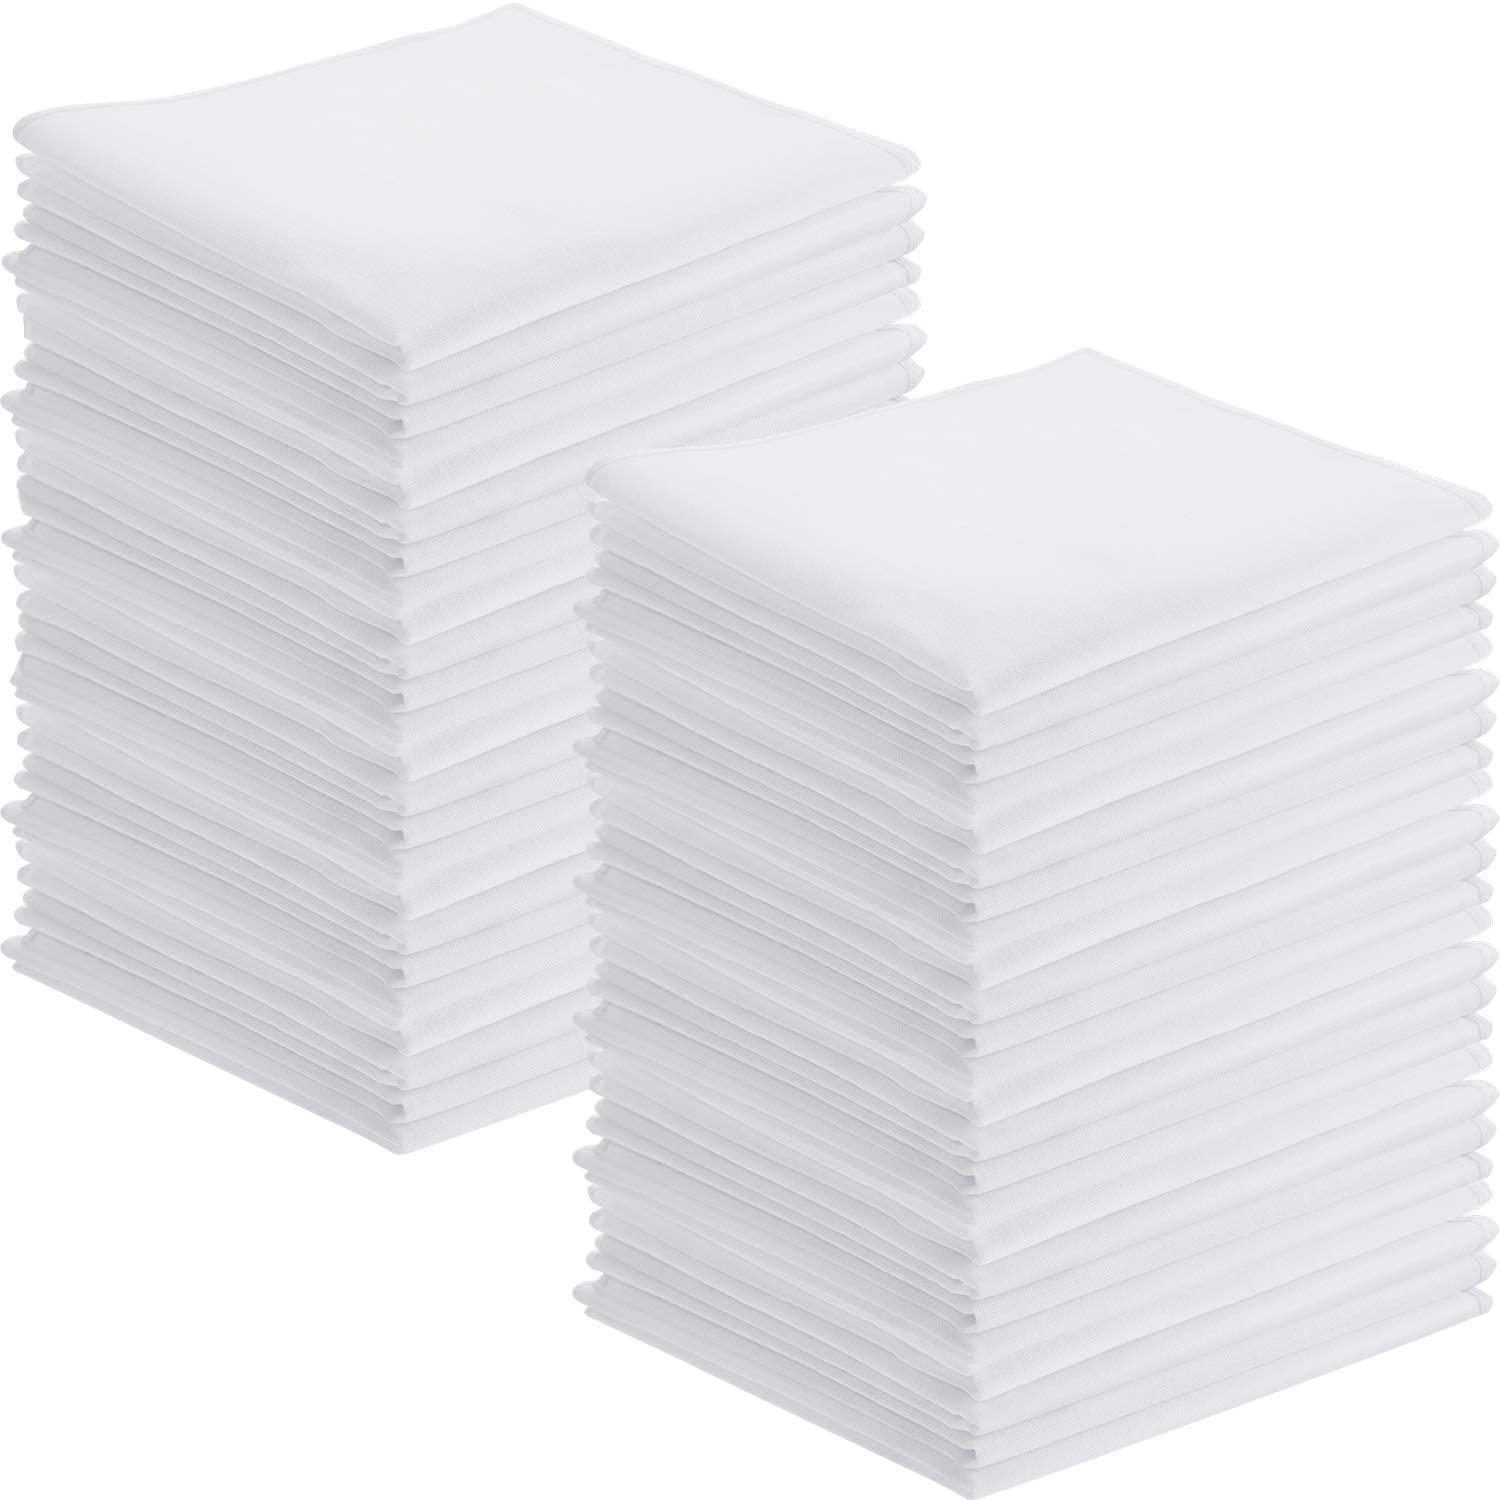 50 Pack White Handkerchiefs Classic Hankies Pocket Square Towel Small Size for Kids Girl Boy Tea Parties